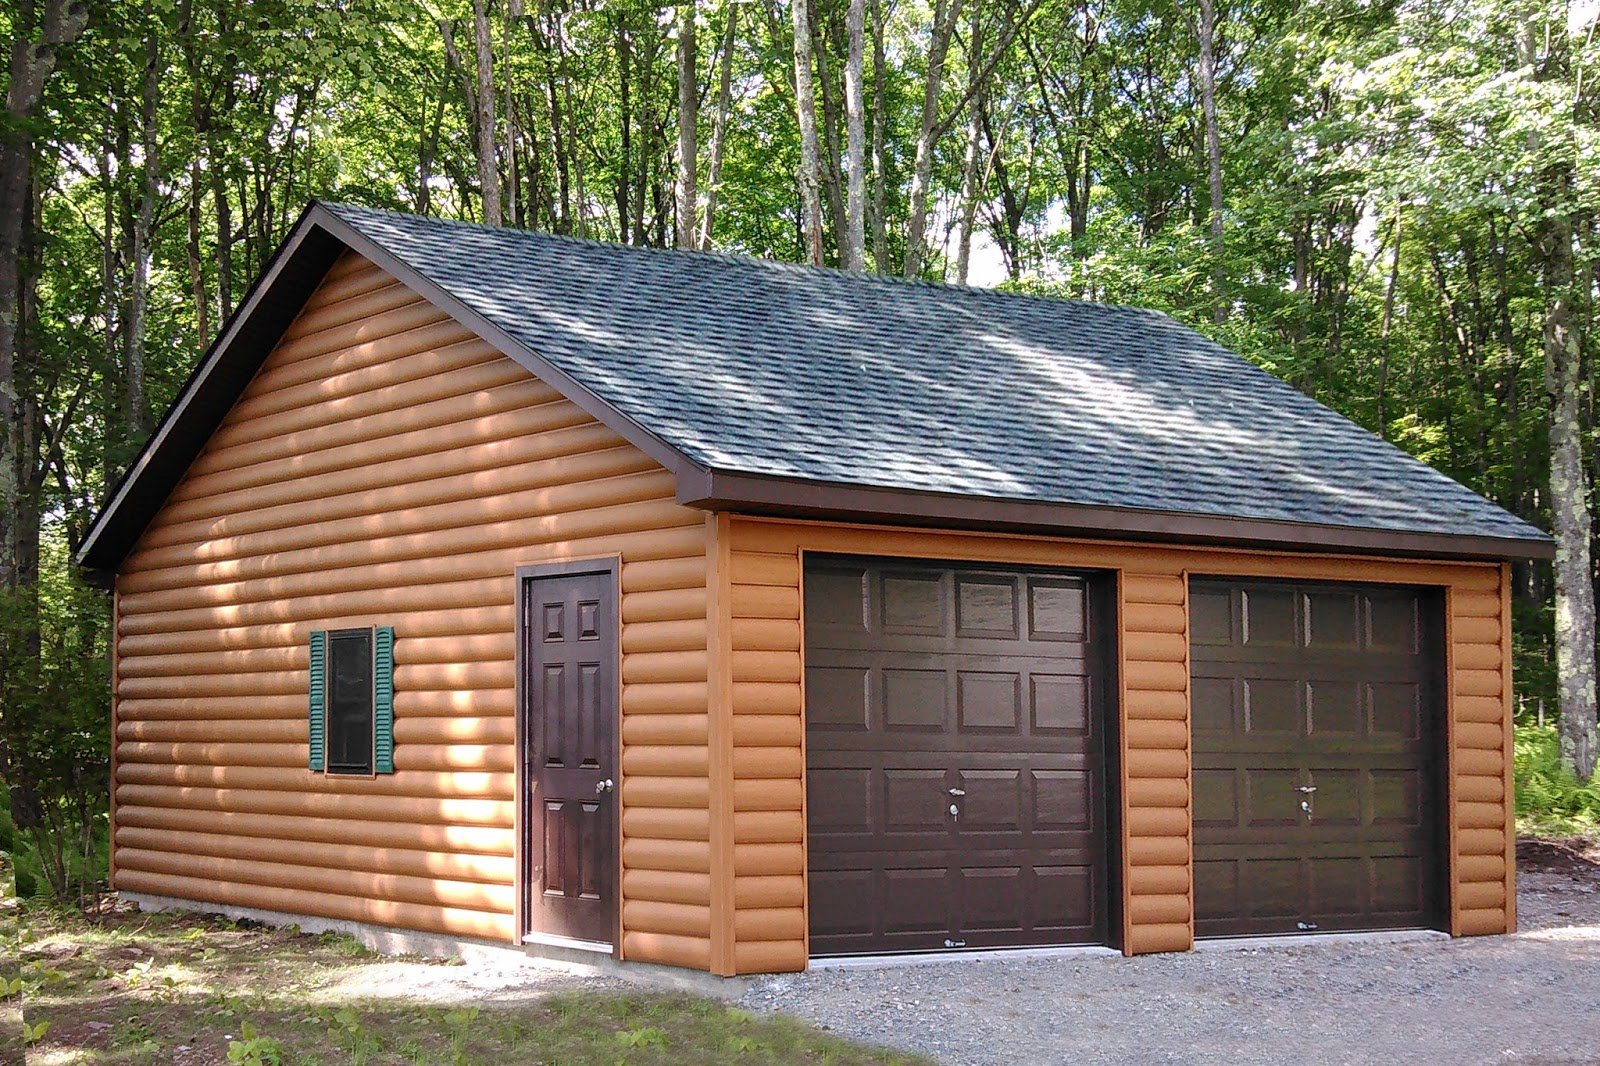 Prefab car garages for sale in pa nj ny ct de md va for Two car garage with workshop plans